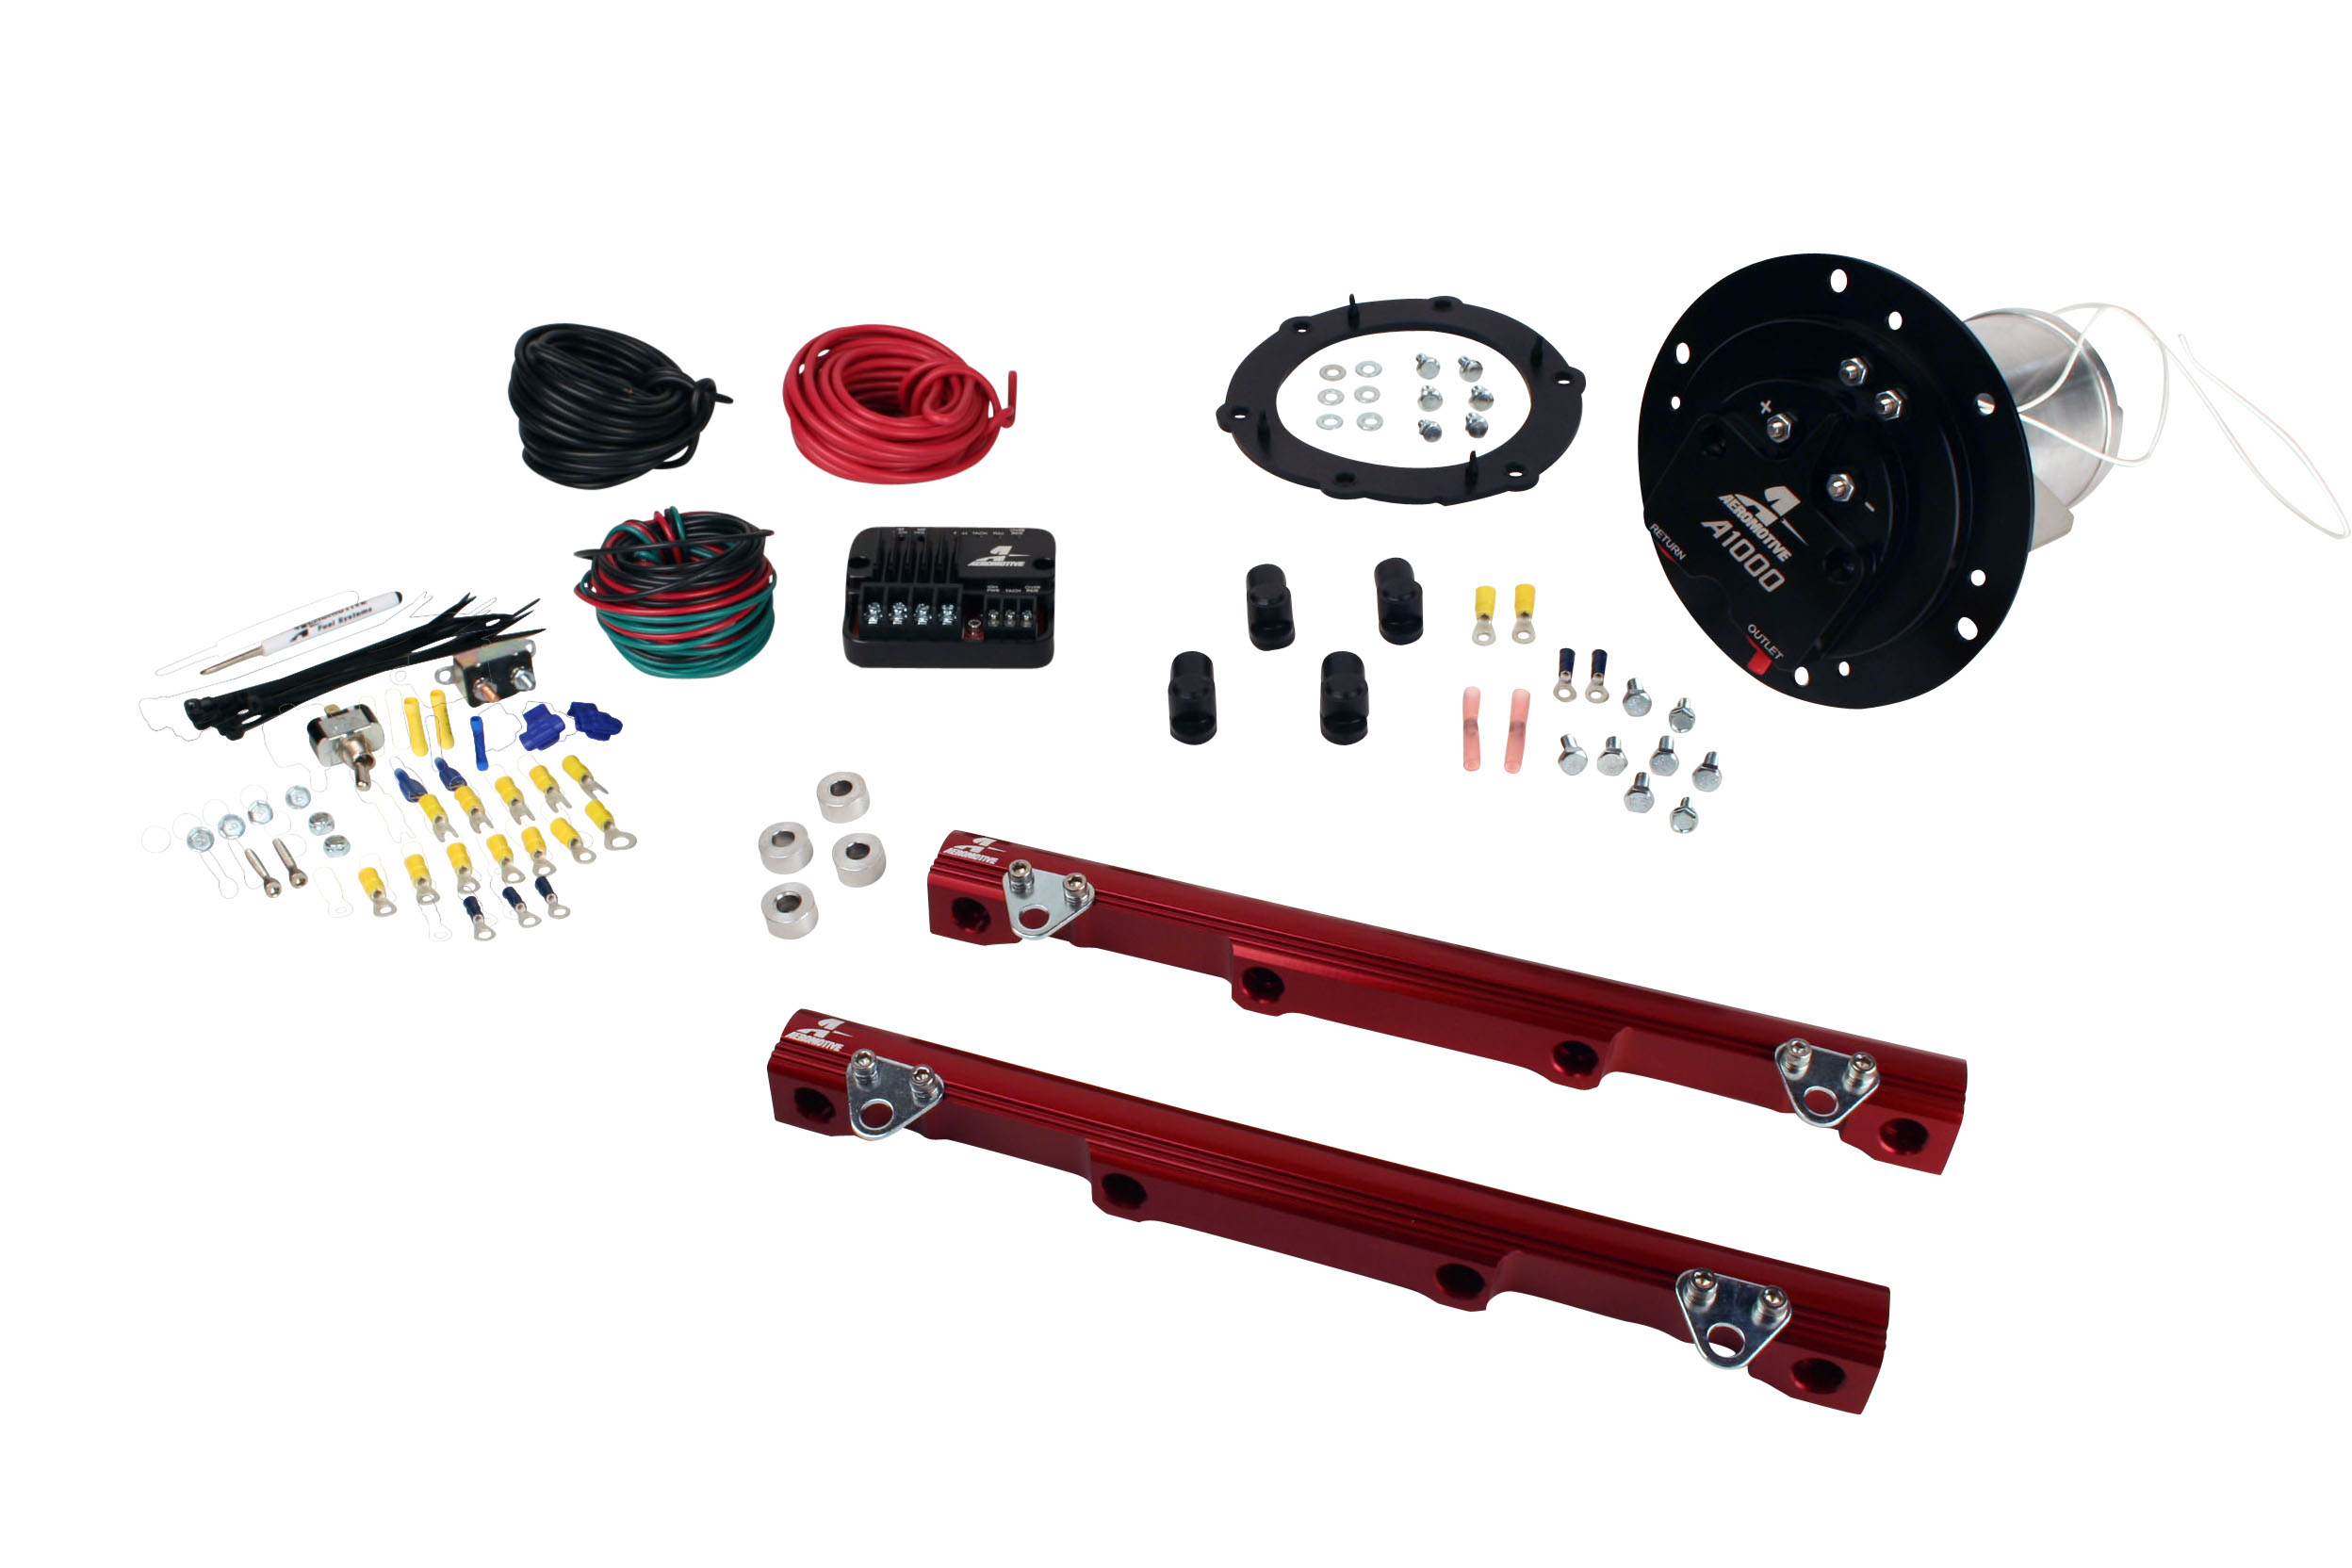 2003-2004 Ford Mustang Cobra Aeromotive Stealth Eliminator Street Fuel System